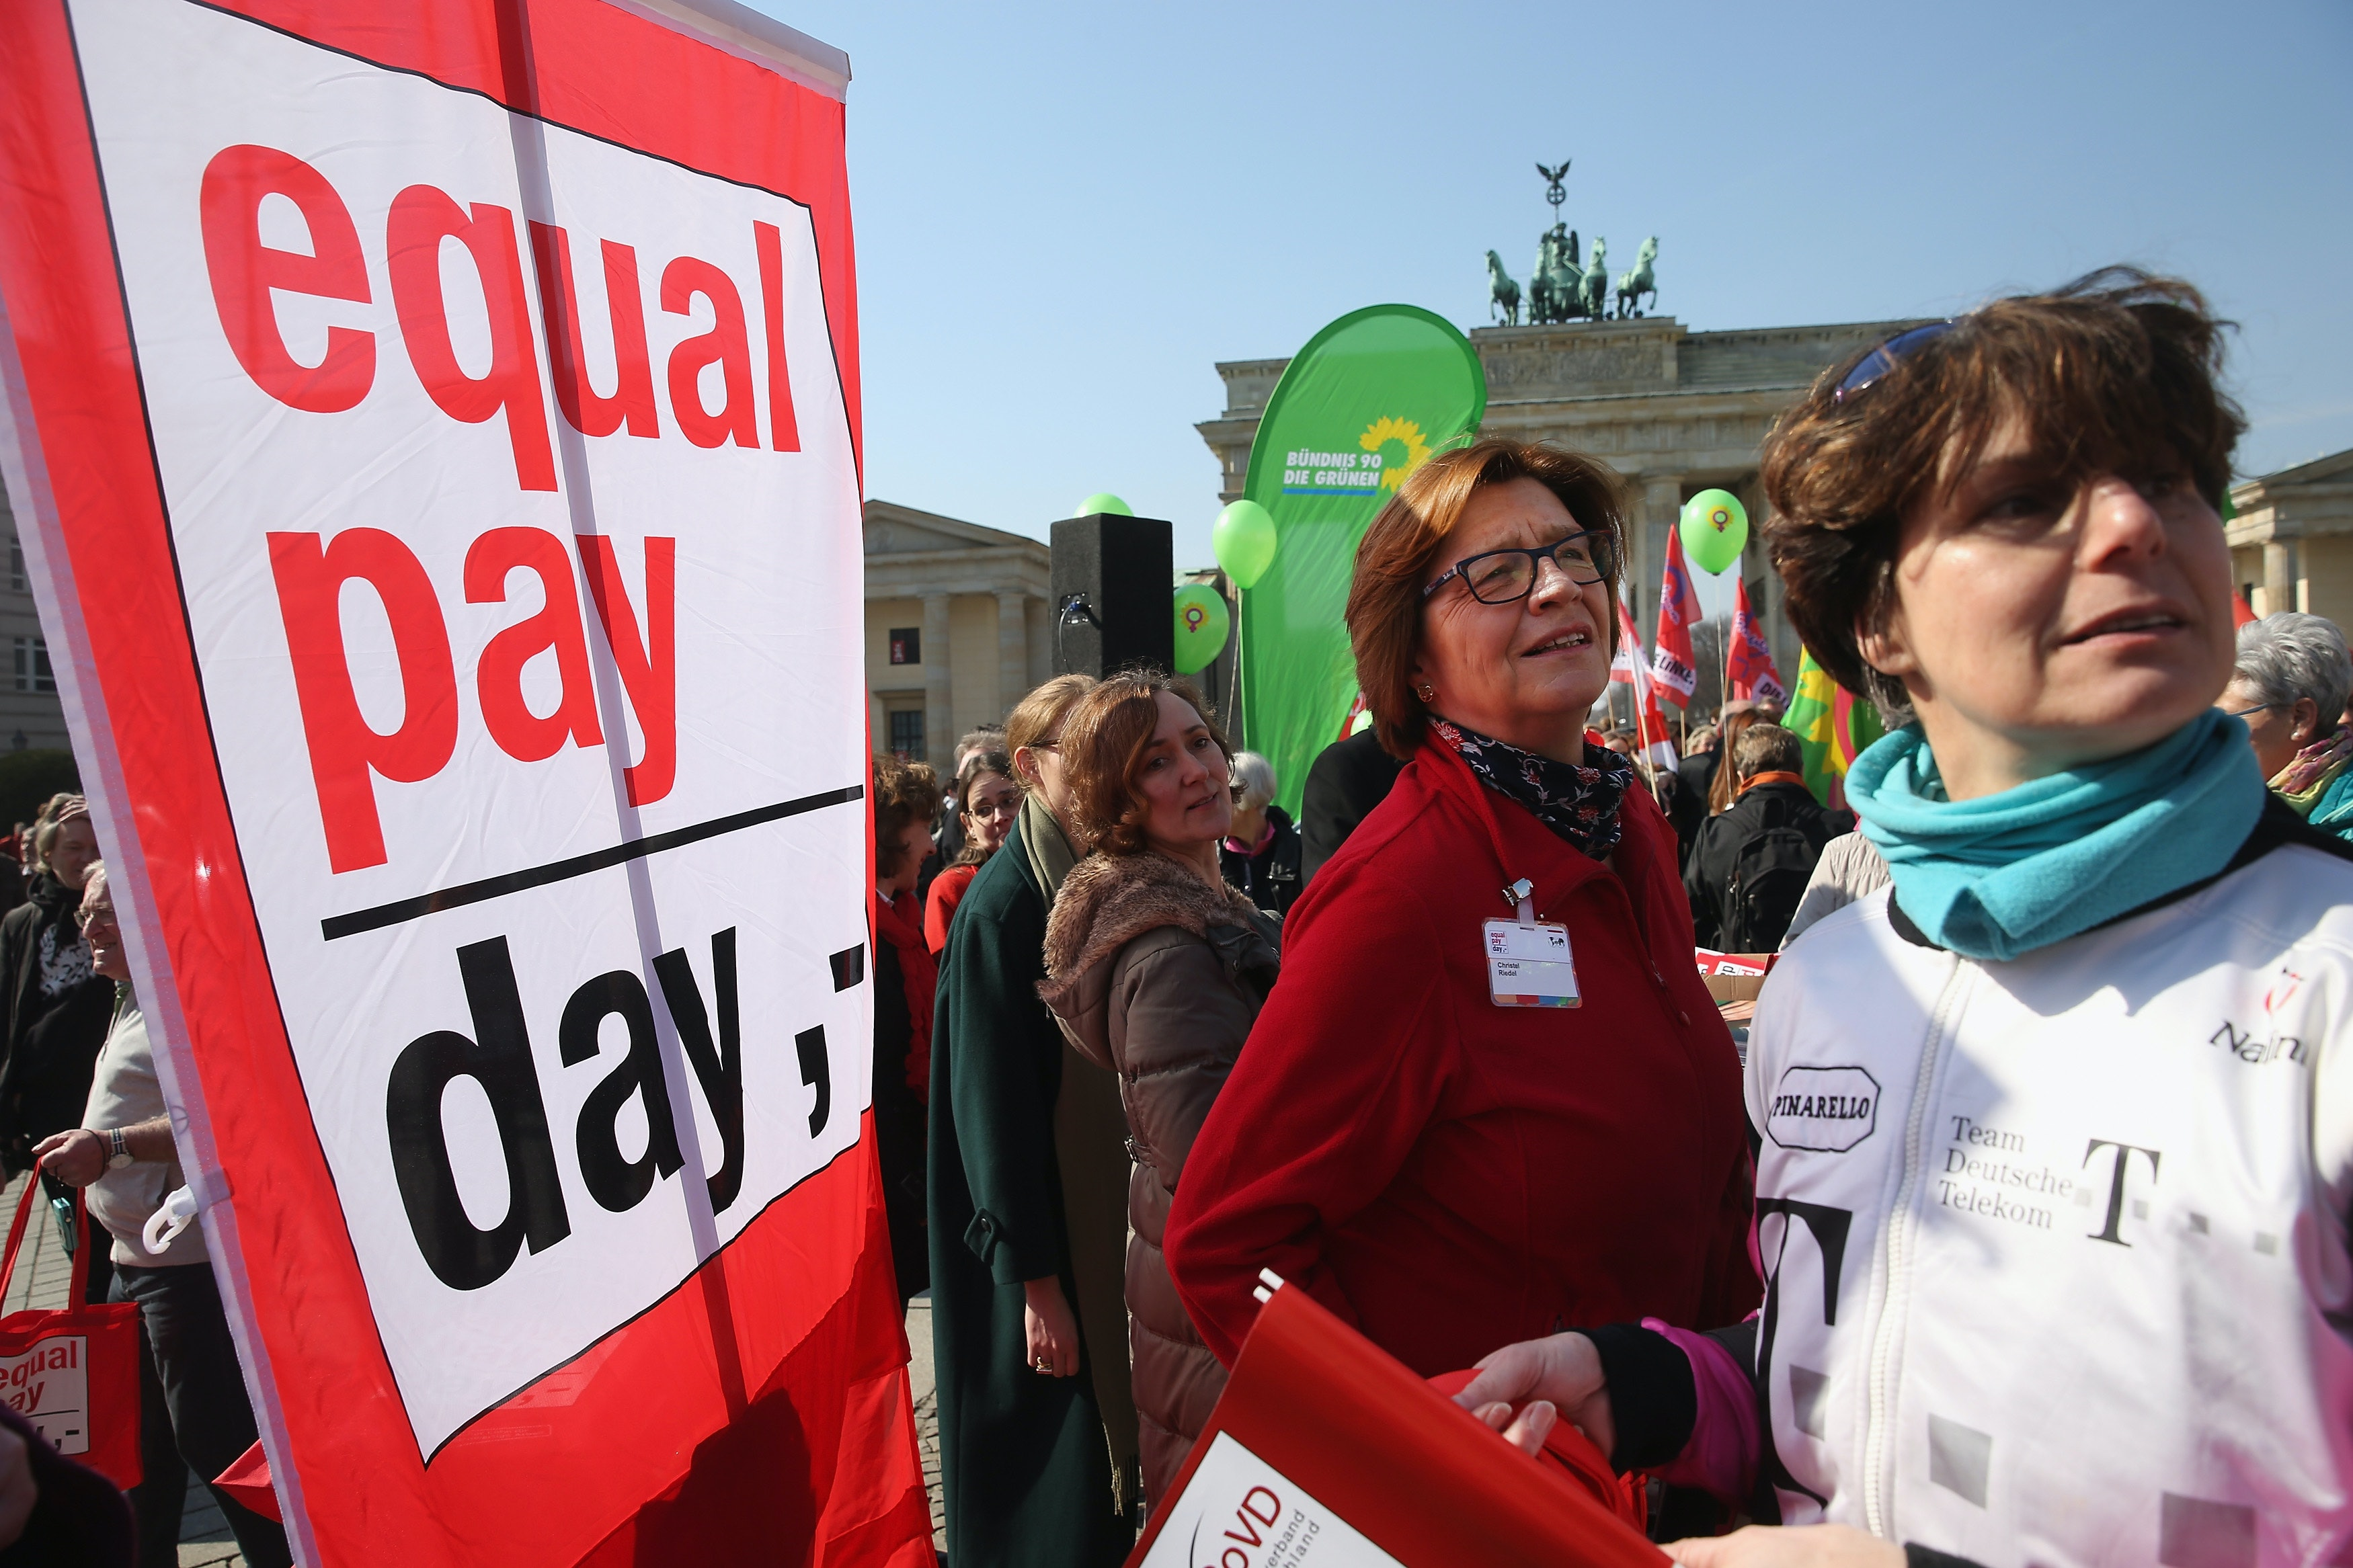 Advocates call for more salary transparency on Equal Pay Day